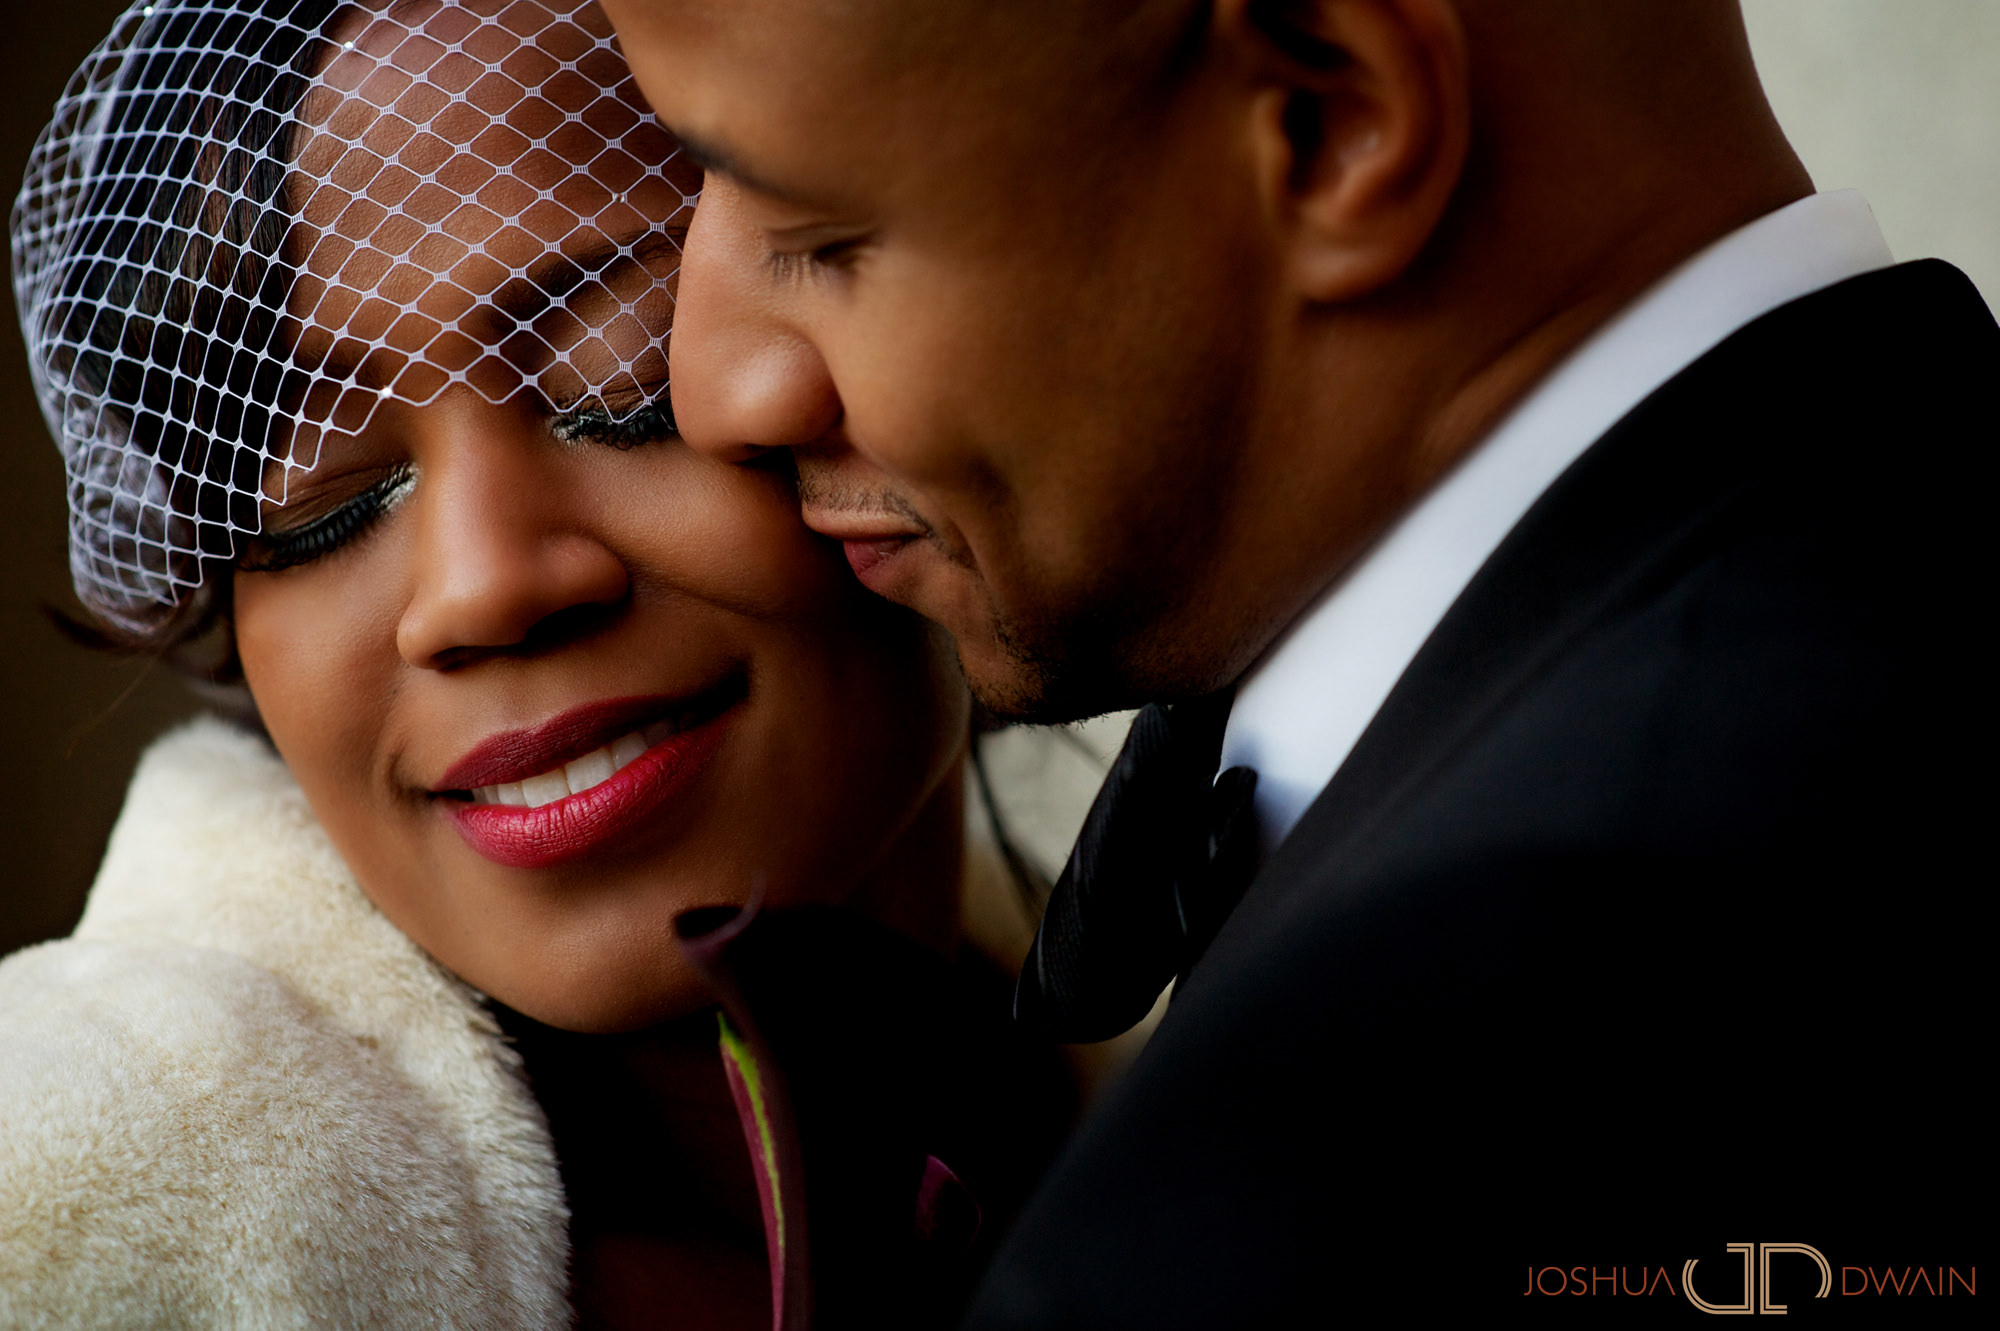 carol-shiloh-001-the-palace-somerset-new-jerseywedding-photographer-joshua-dwain-2011-11-25_cs_527